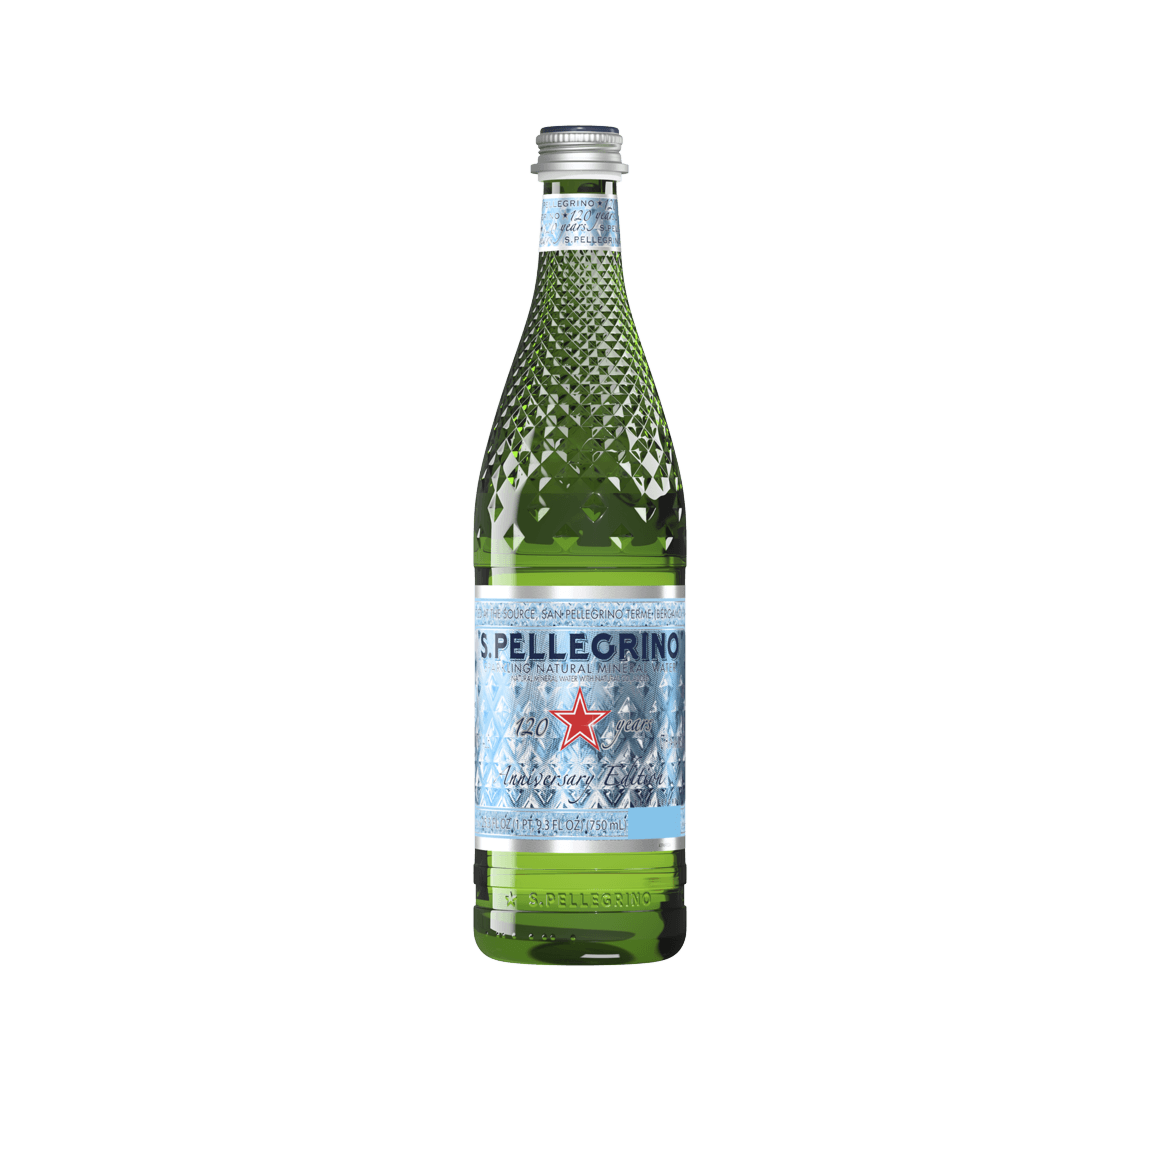 S.Pellegrino® Sparkling Natural Mineral Water - Limited Edition Diamond Glass Bottle - 750 ml (25.3 oz.) - Bottle - Case of 6